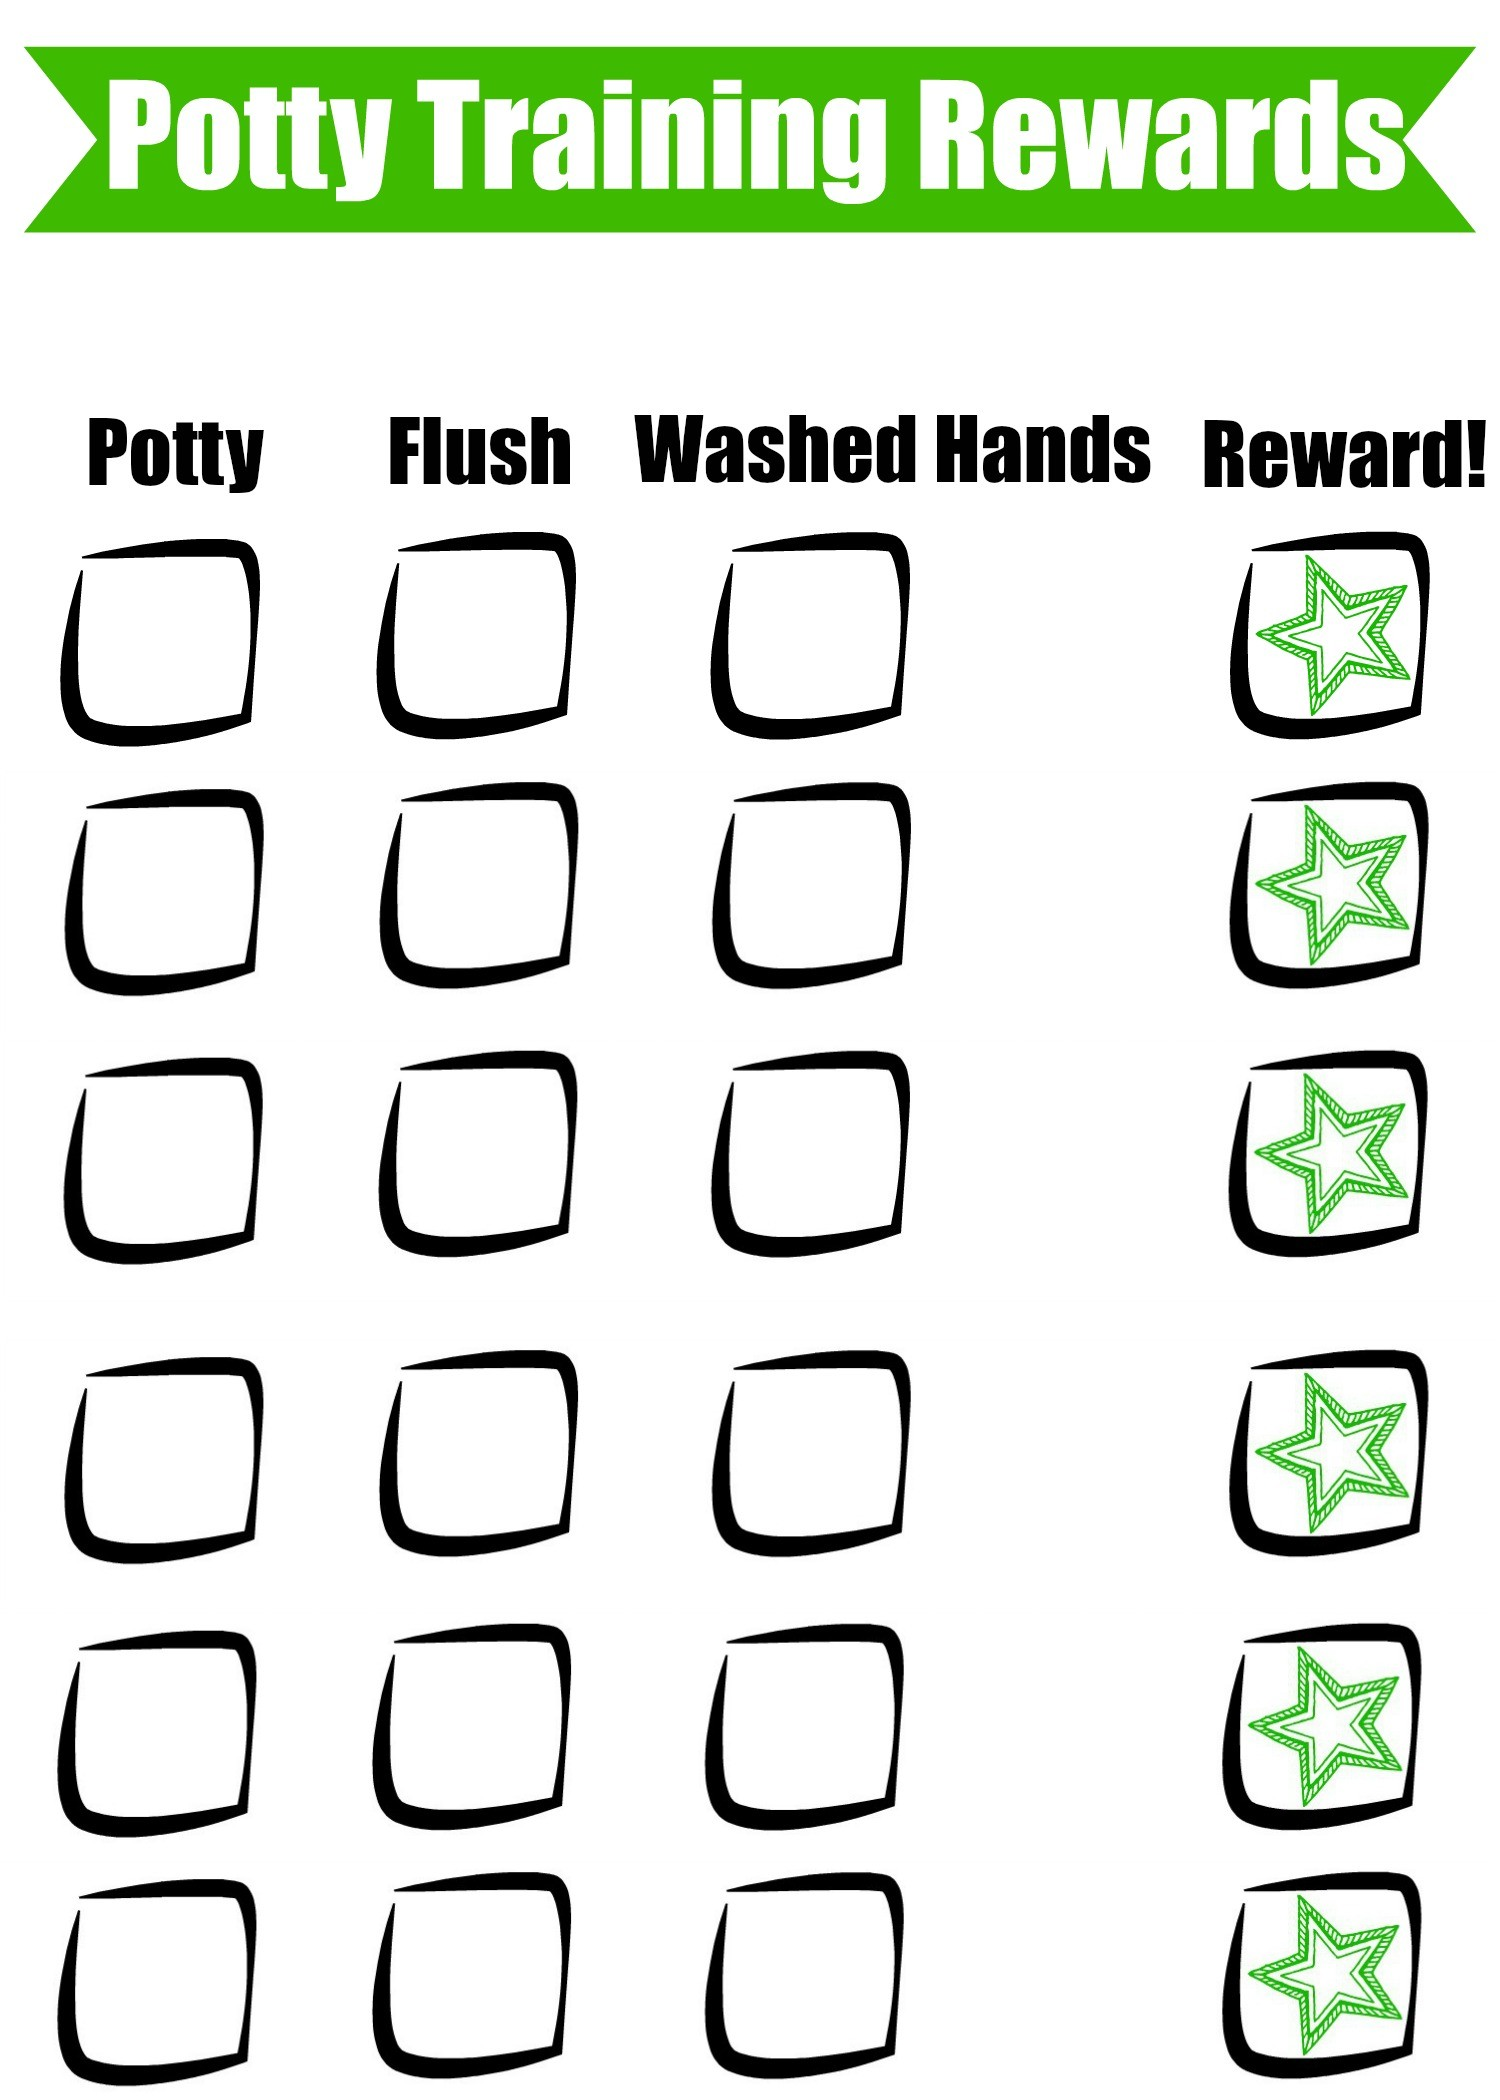 reward chart for potty training